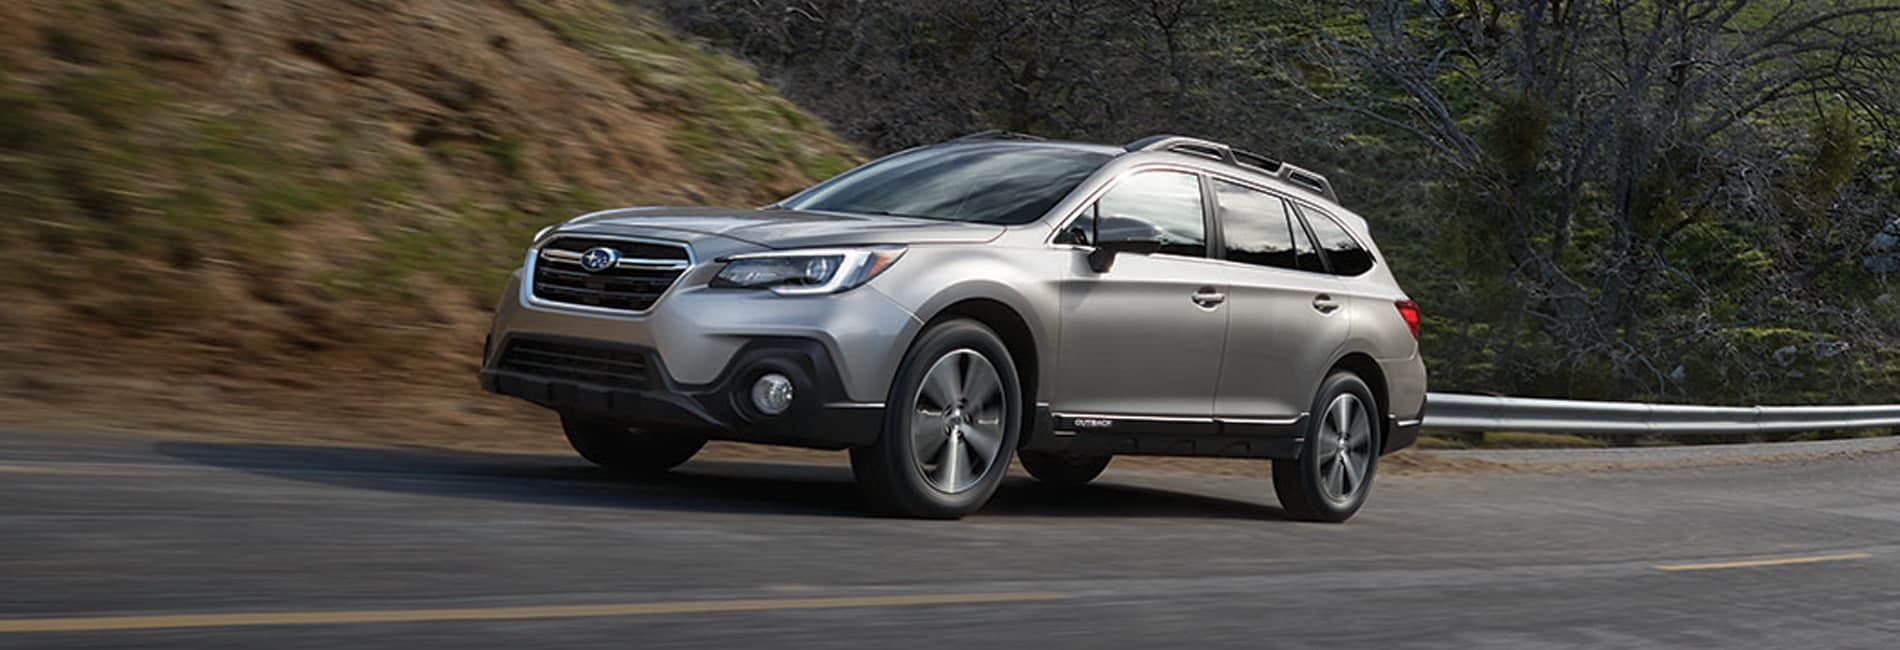 Subaru Outback Exterior Vehicle Features